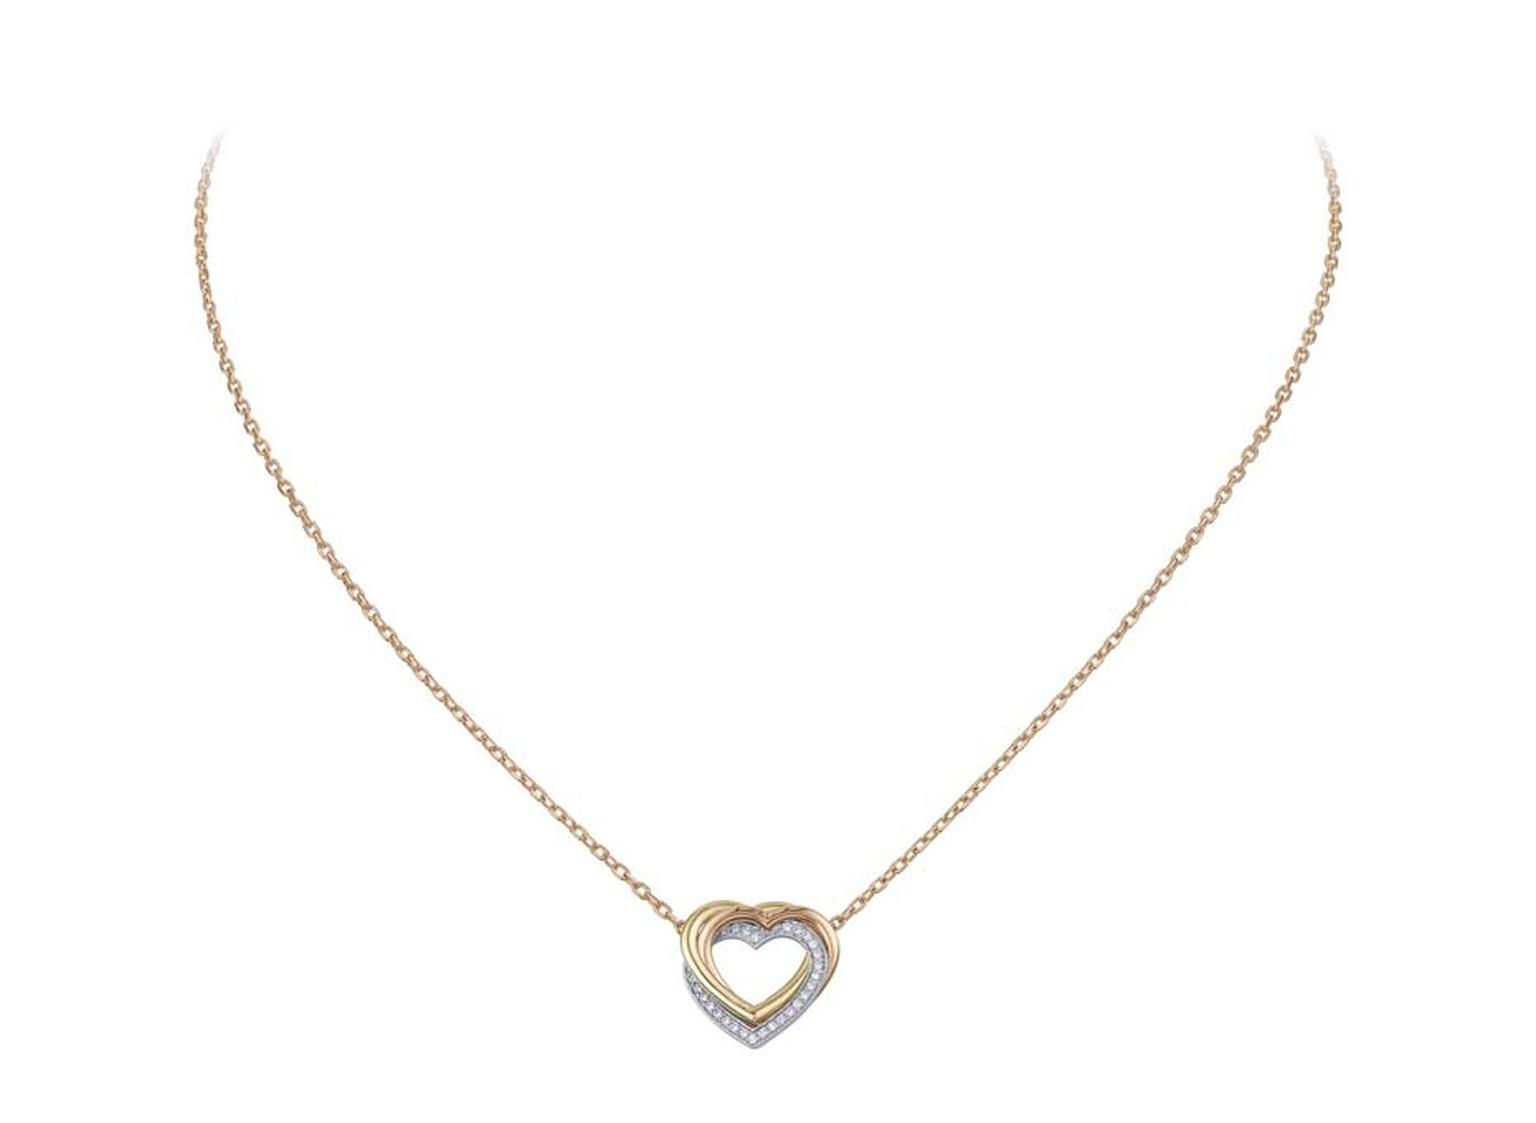 Cartier Sweet Trinity pendant with three intertwined hearts in rose and yellow gold and diamond-set grey gold.